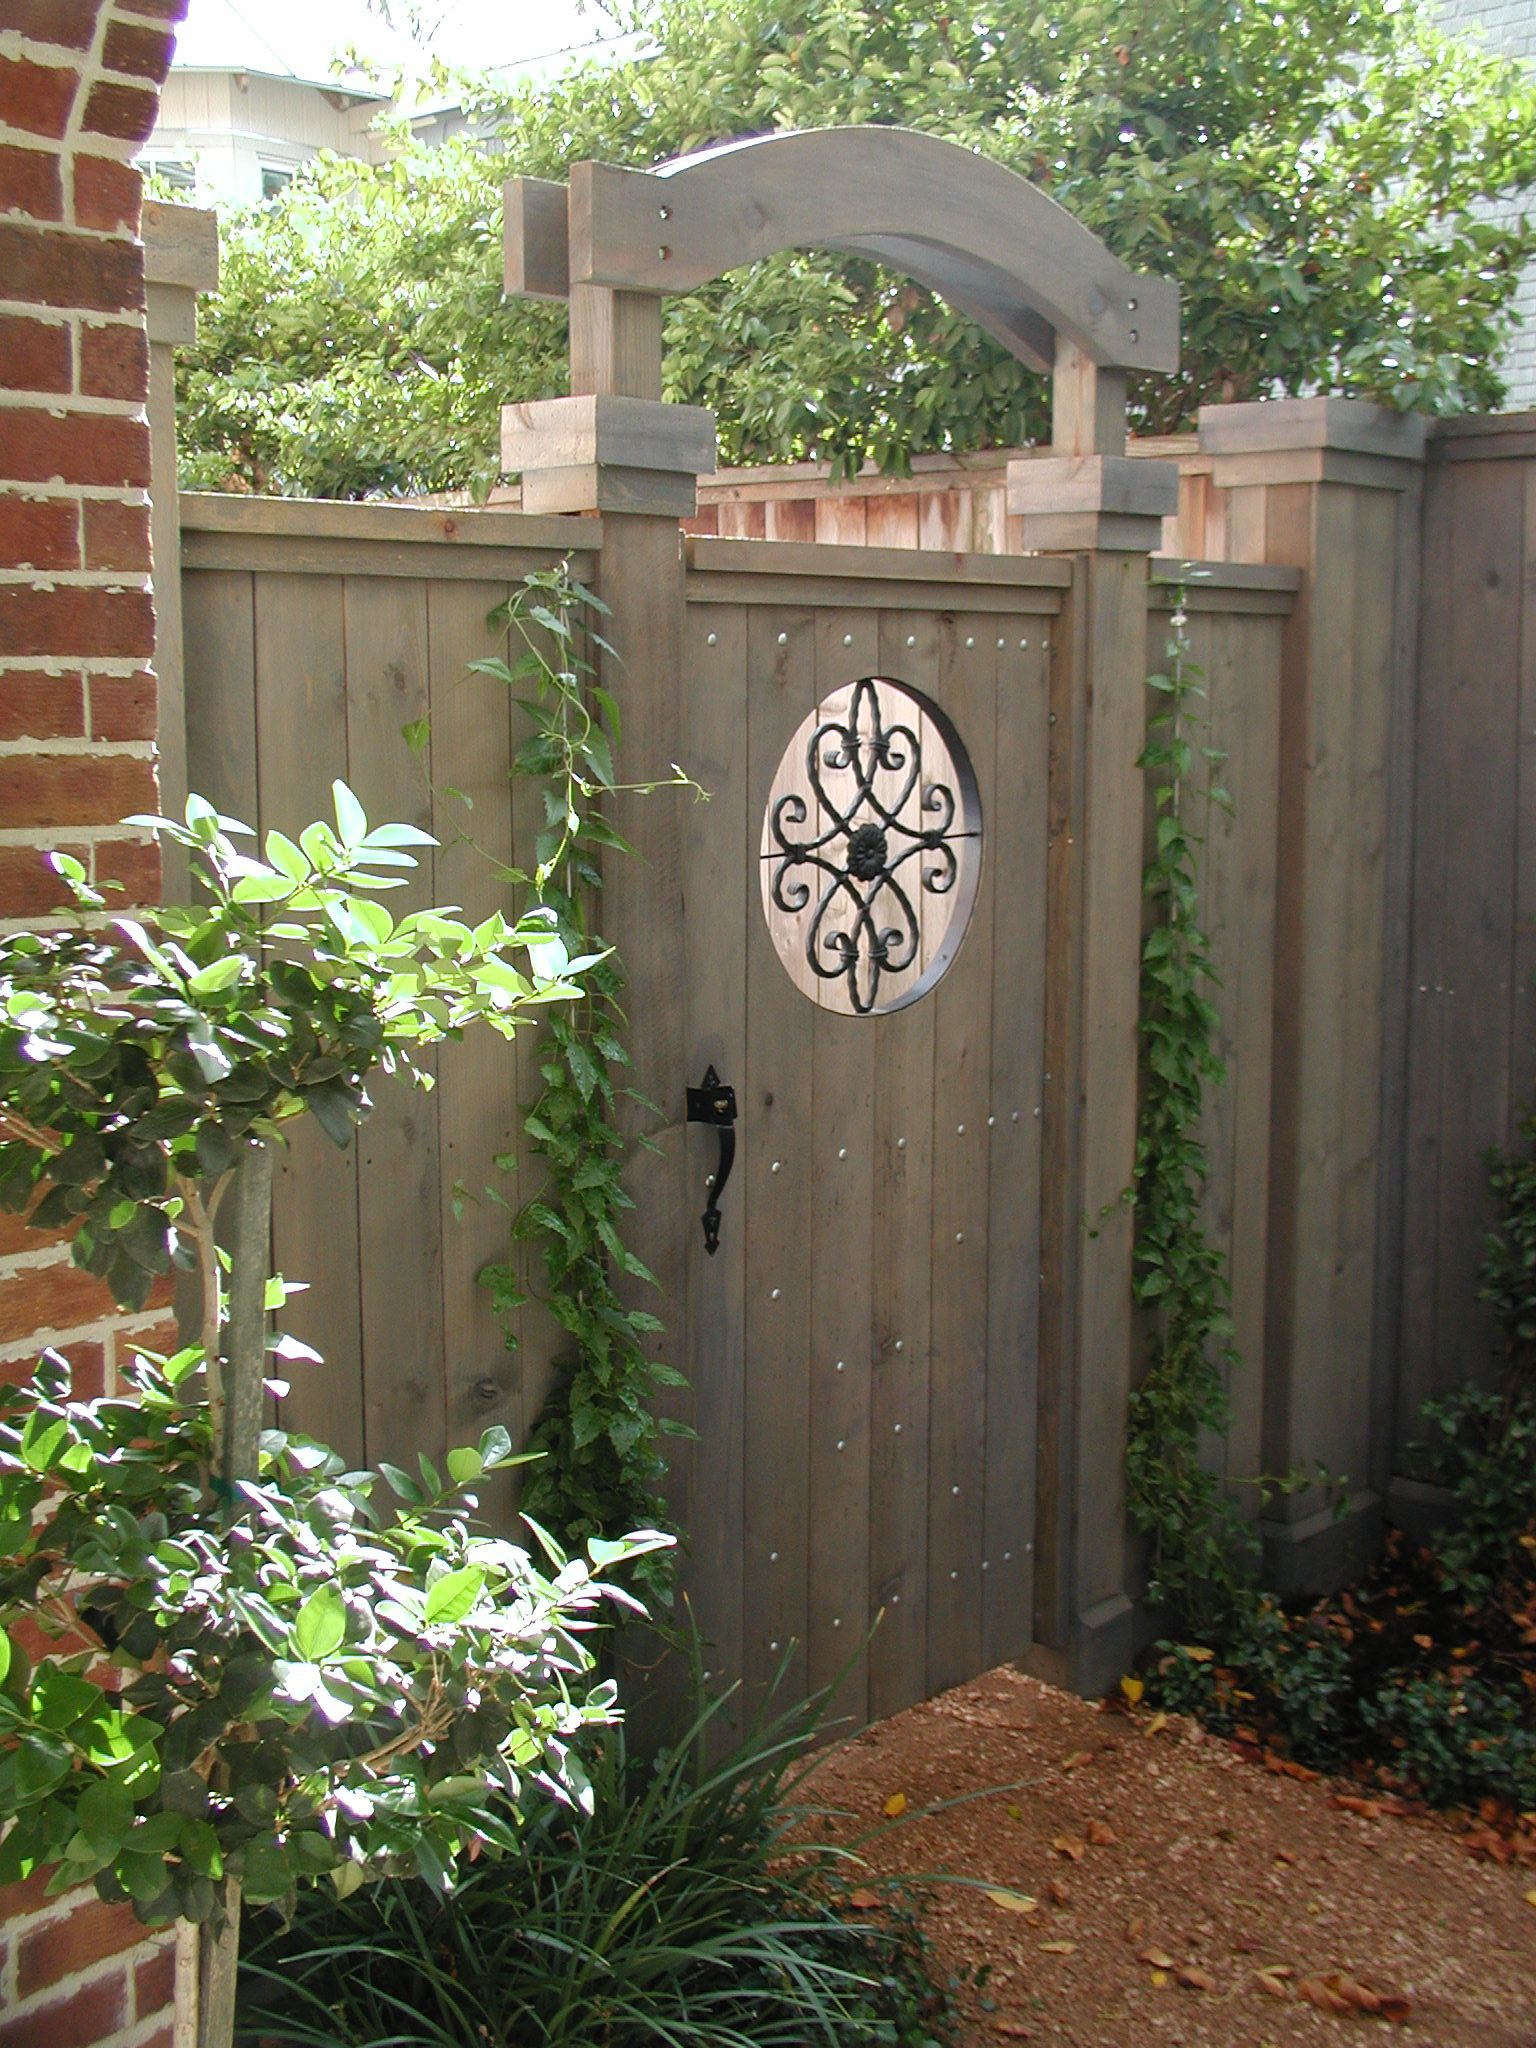 Lovely private garden gate with planter and round window GARDEN